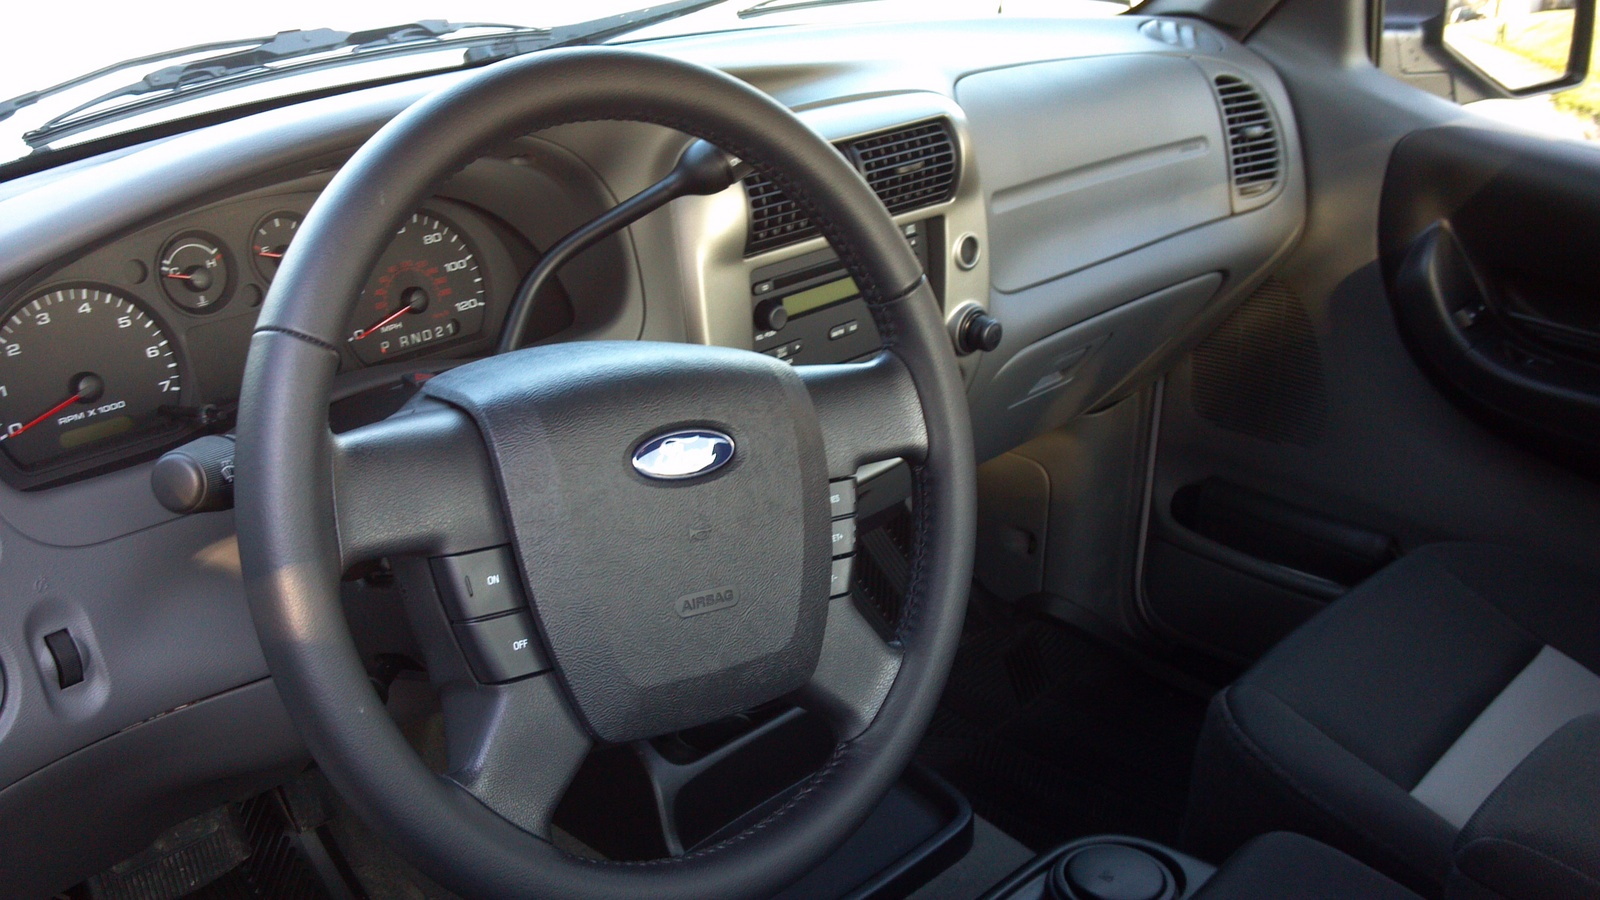 2009 ford ranger interior images amp pictures   becuo